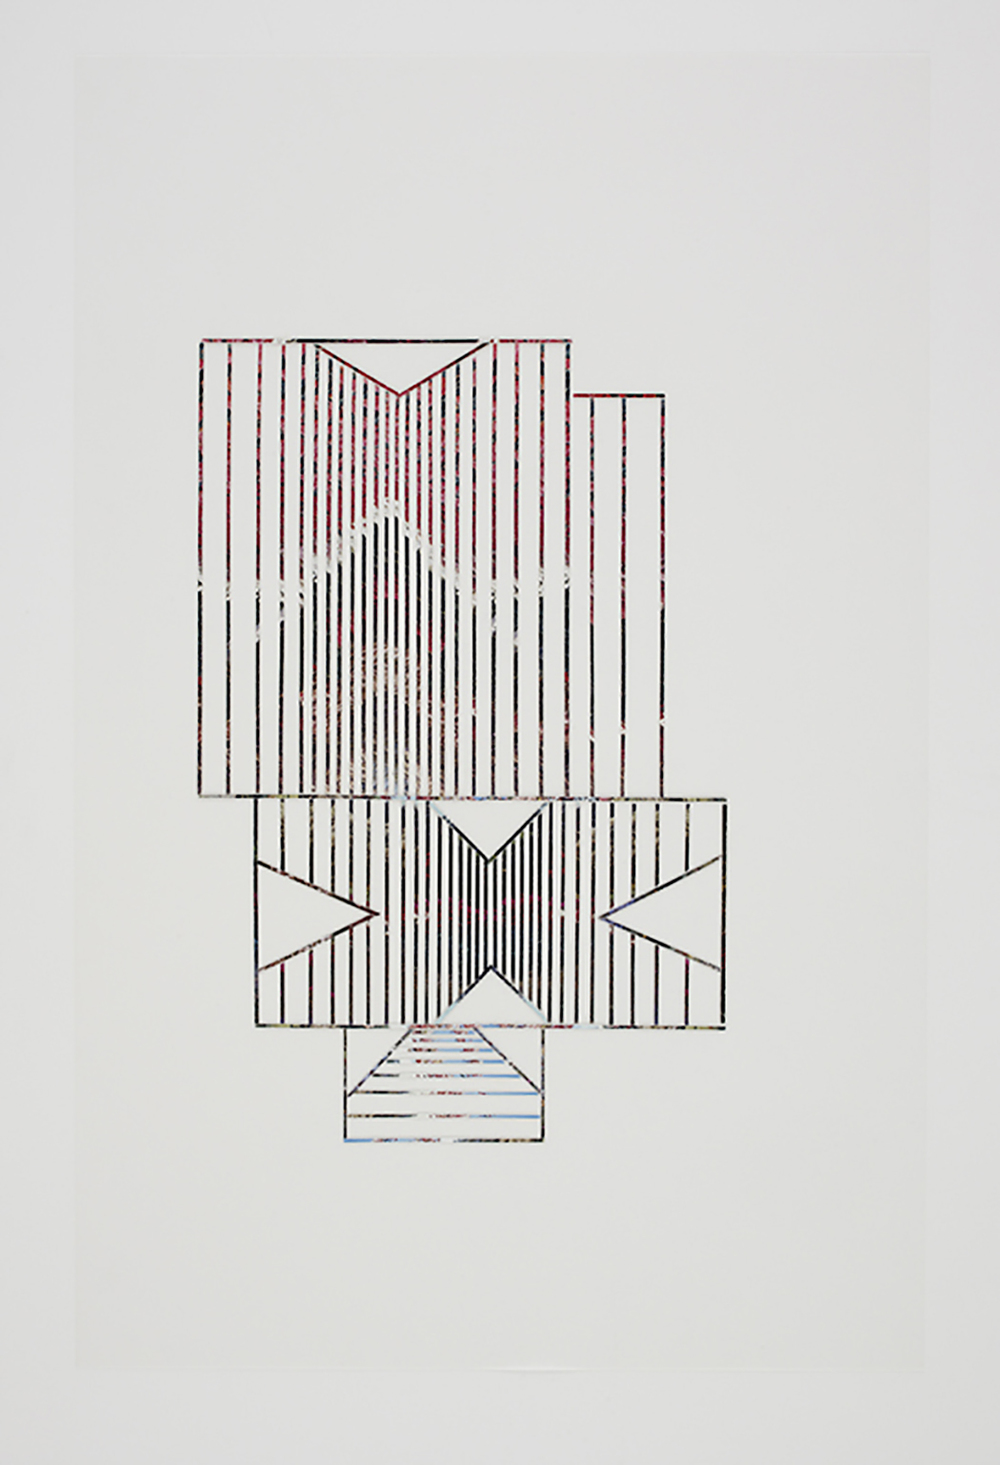 Roof #12, 2010, collage on drafting film paper, 34 x 22 inches/ 86 x 56 cm